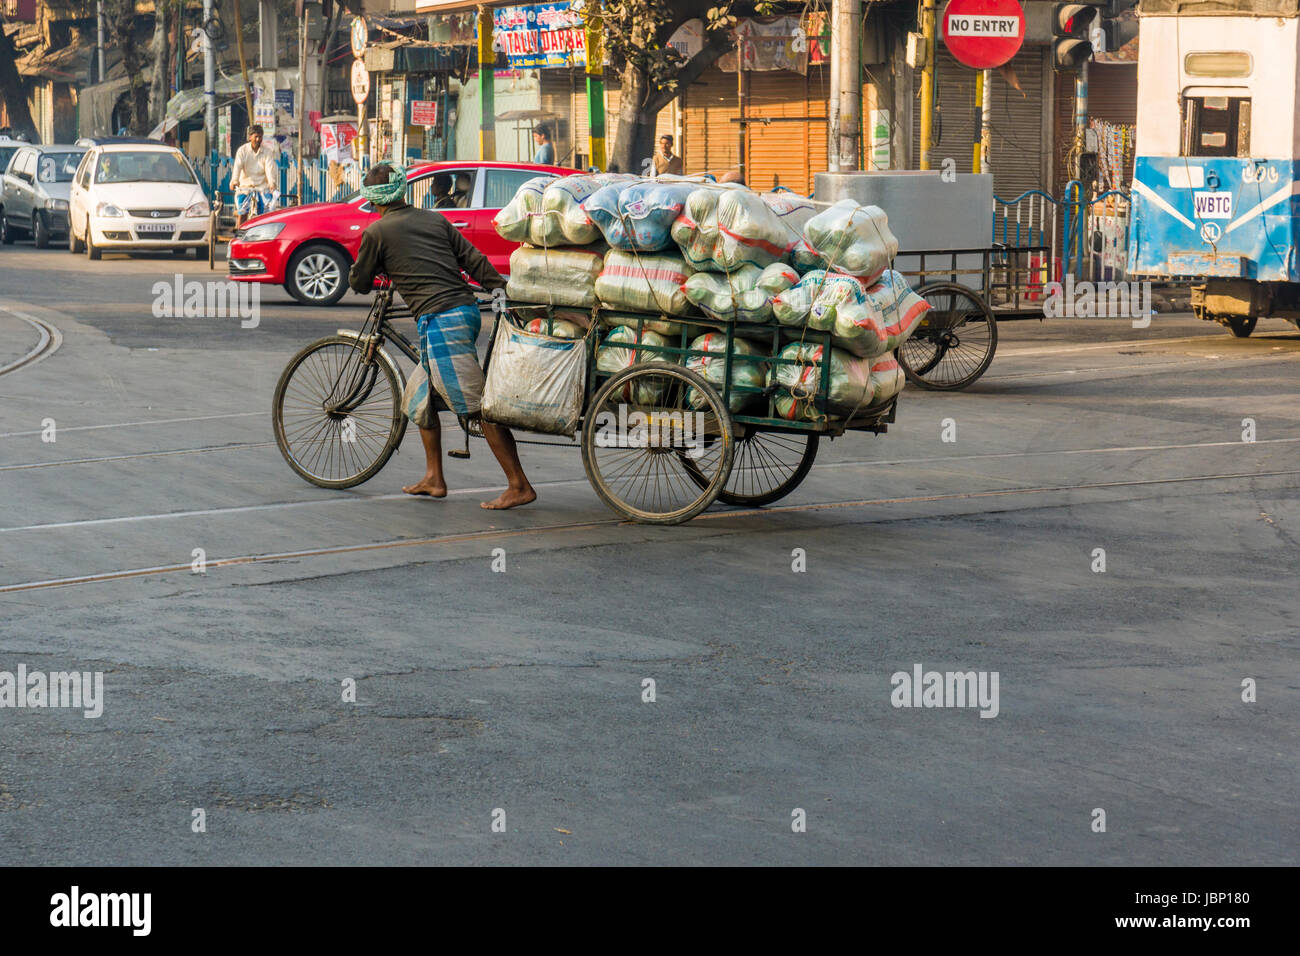 A heavily loaded cycle rikshaw is crossing a road in the suburb Esplanade Stock Photo